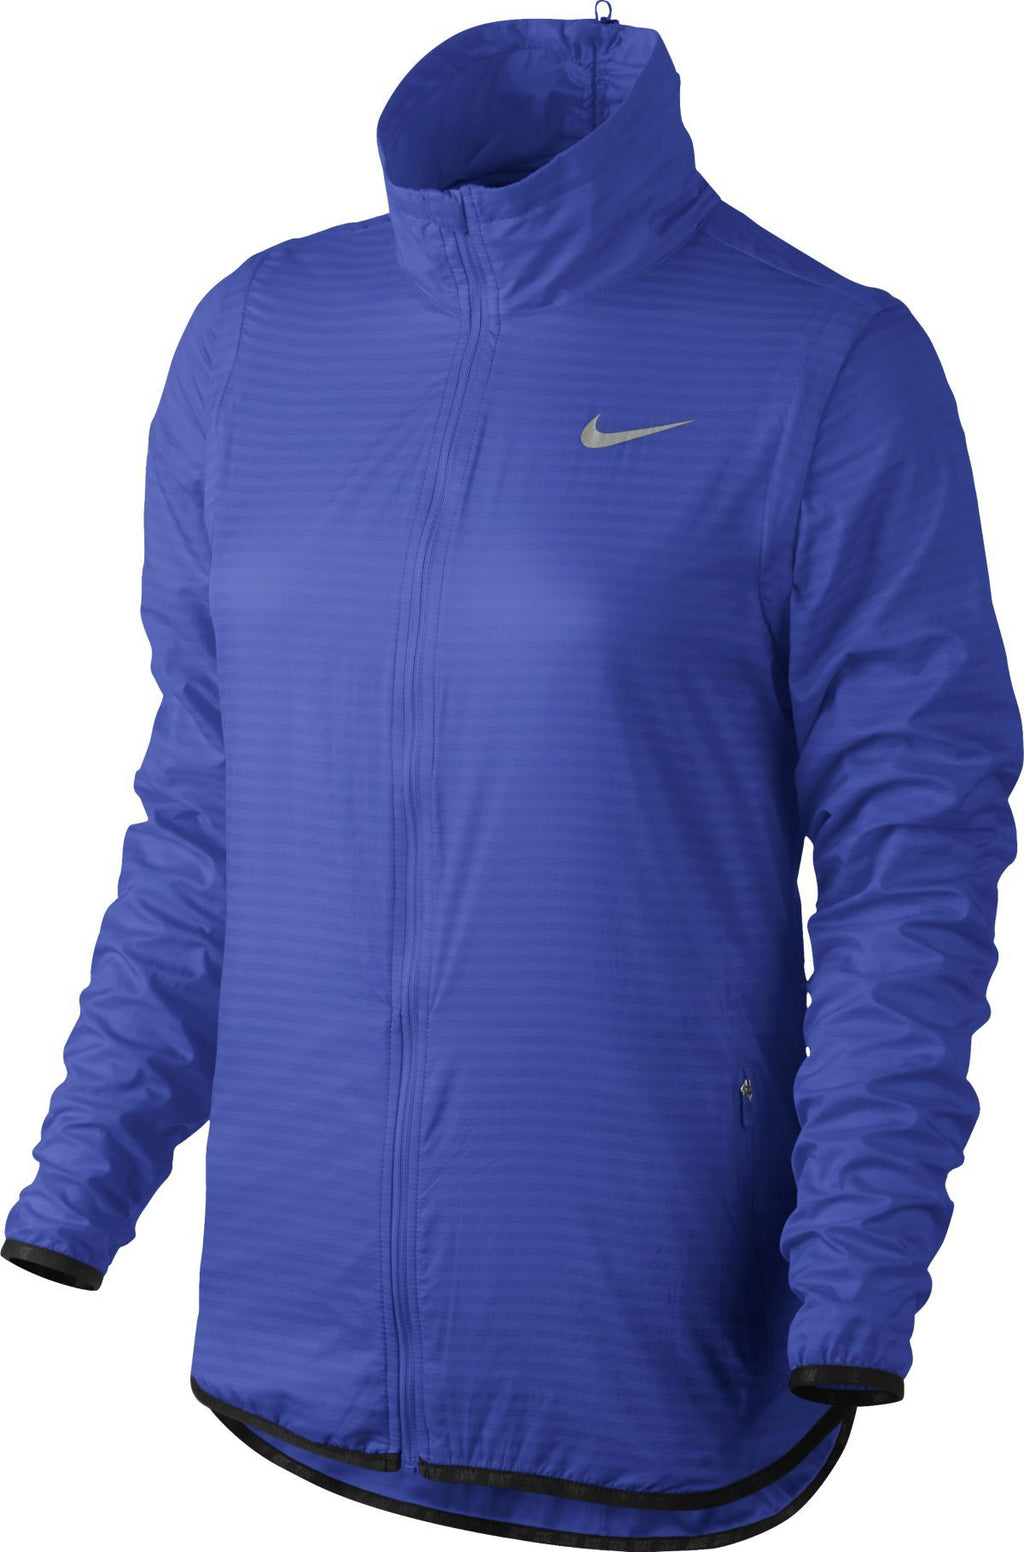 Nike Women's Majors Flight Convertible Jacket   725690-452